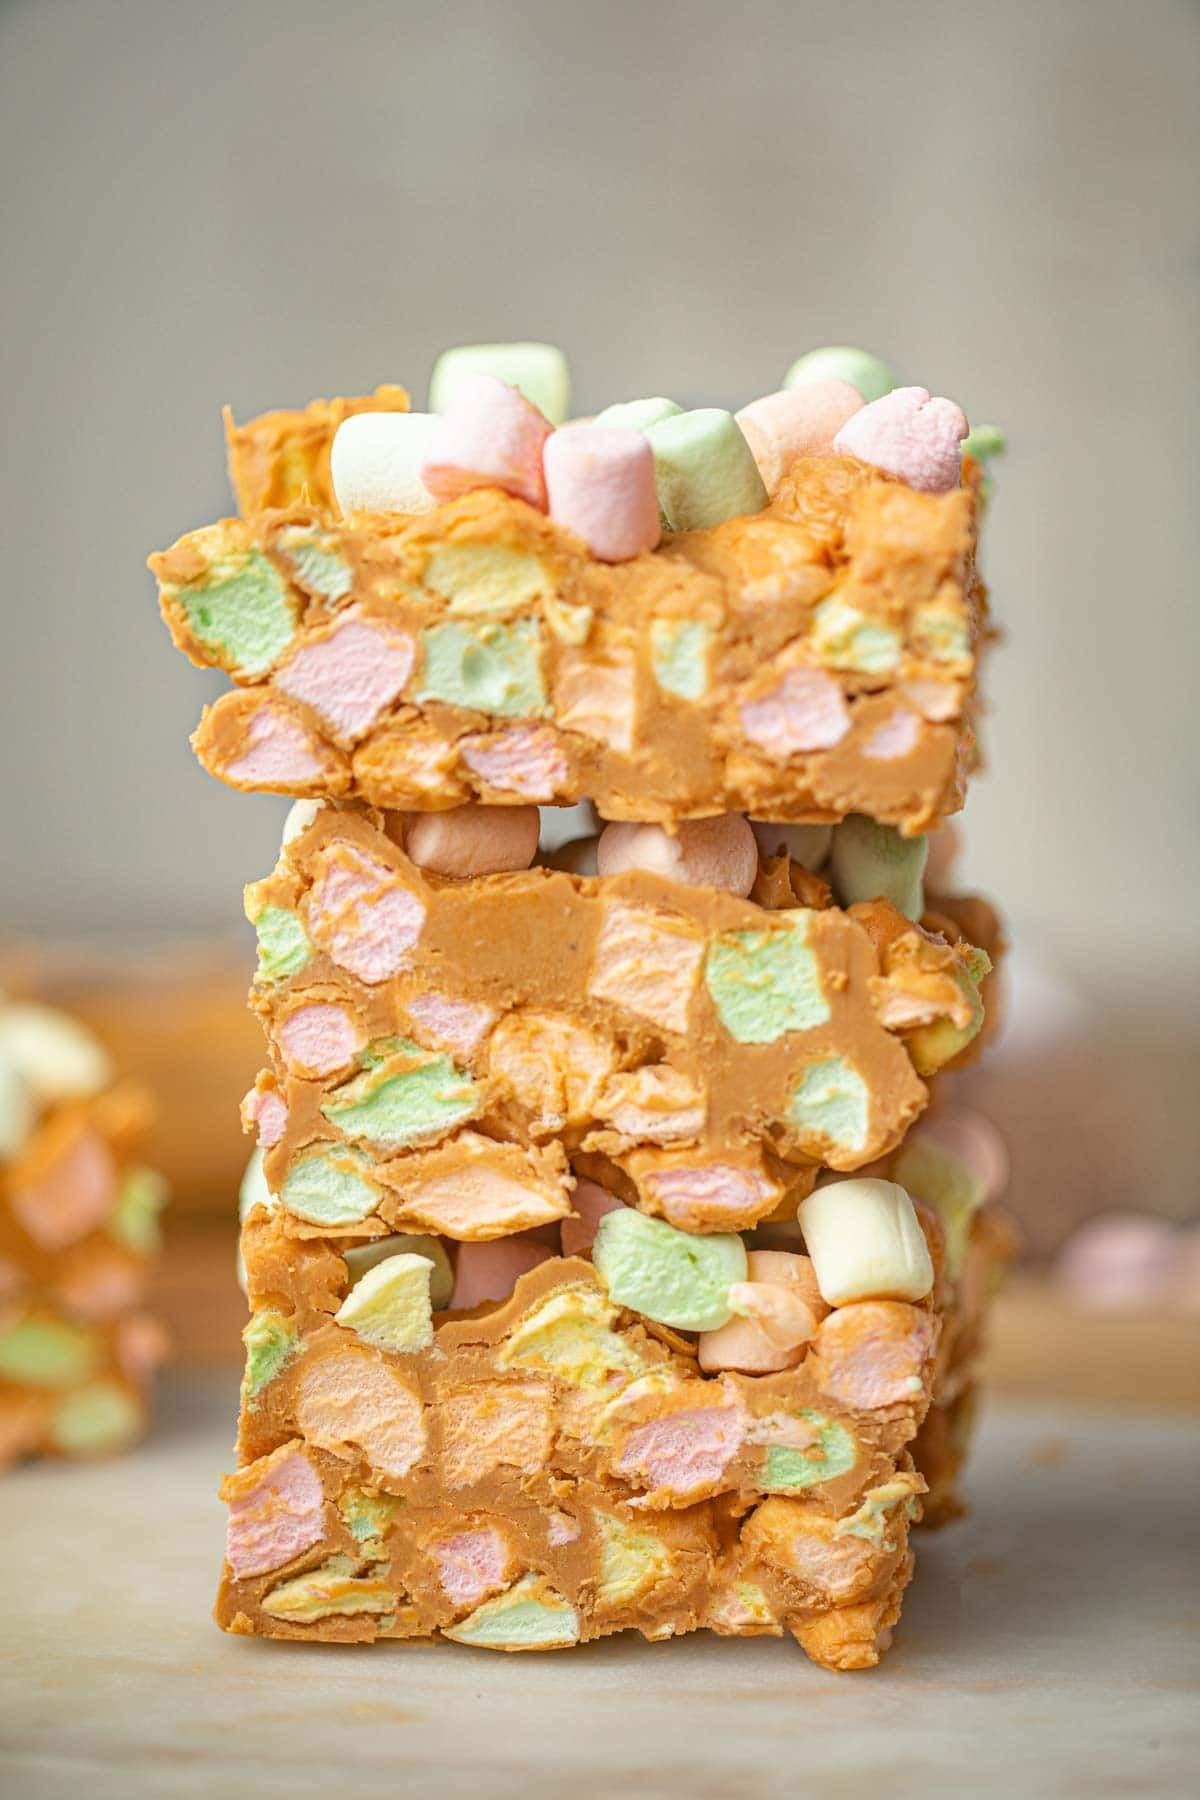 Peanut Butter Confetti Squares Are An Easy Colorful Dessert With Fruity Marshmall In 2020 Peanut Butter Marshmallow Squares Colorful Desserts Peanut Butter Marshmallow